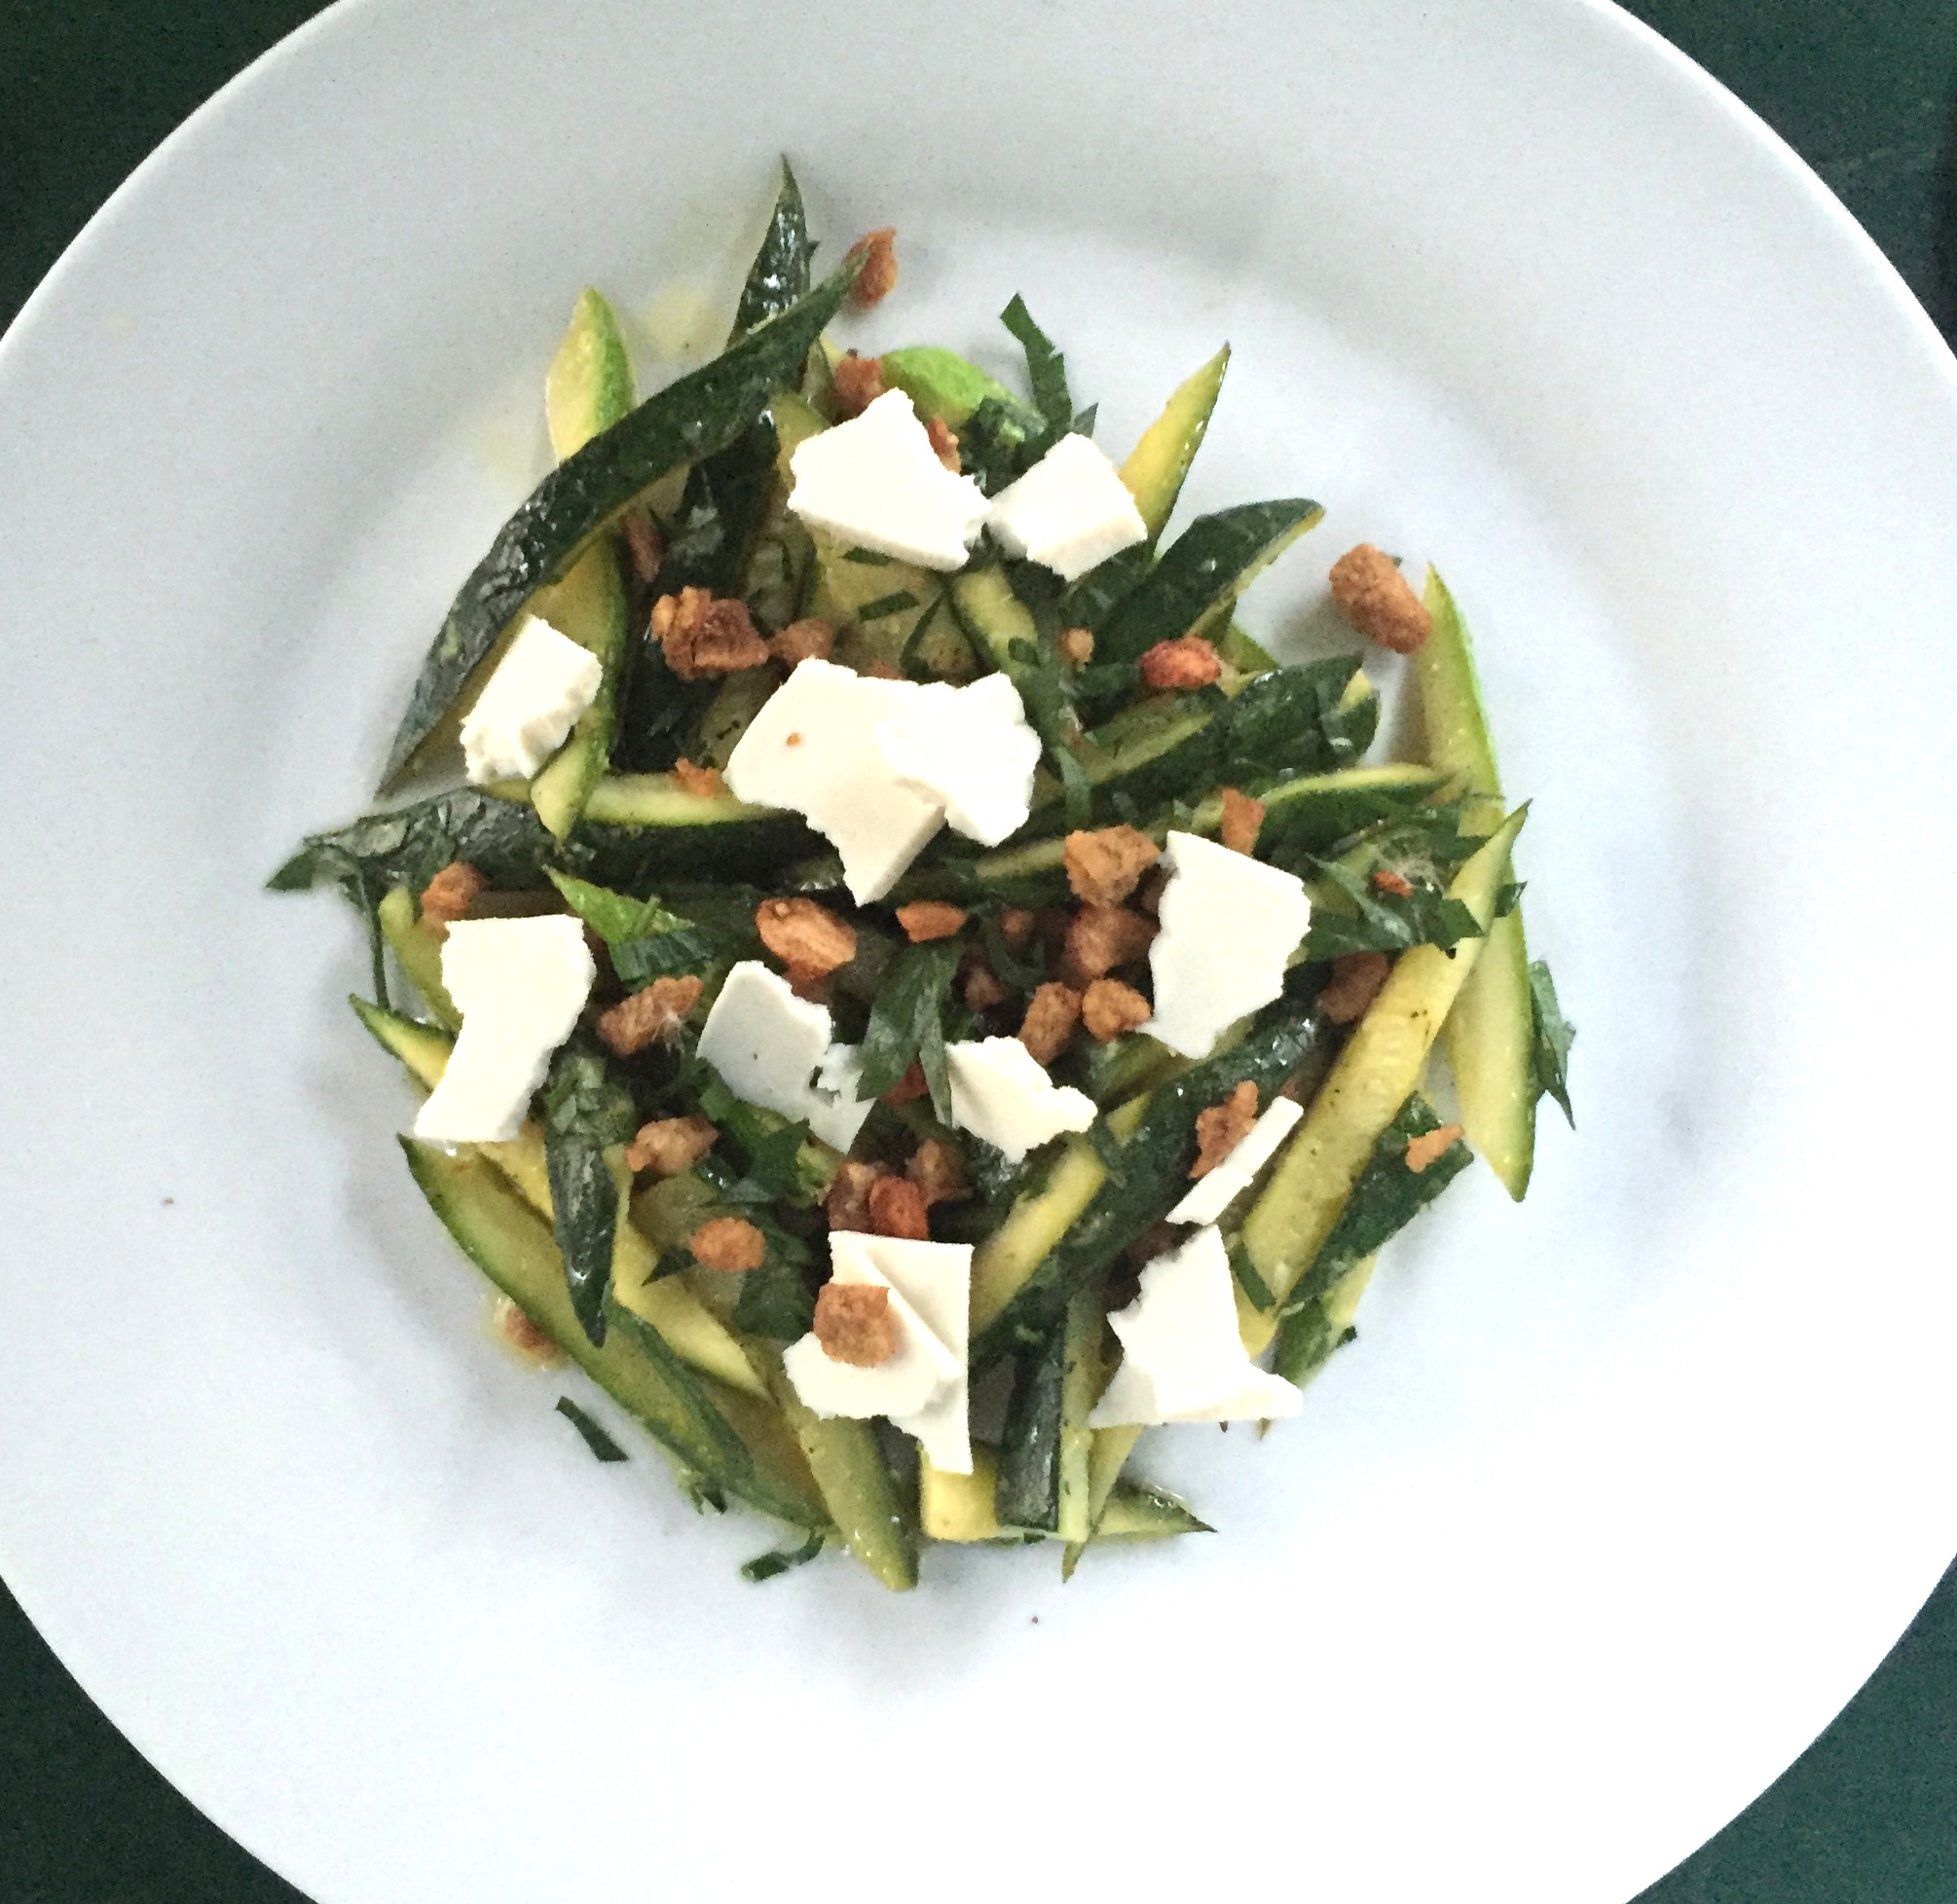 Flash-Sauted Zucchini with Lemon, Duck Crackling & Ricotta Salata